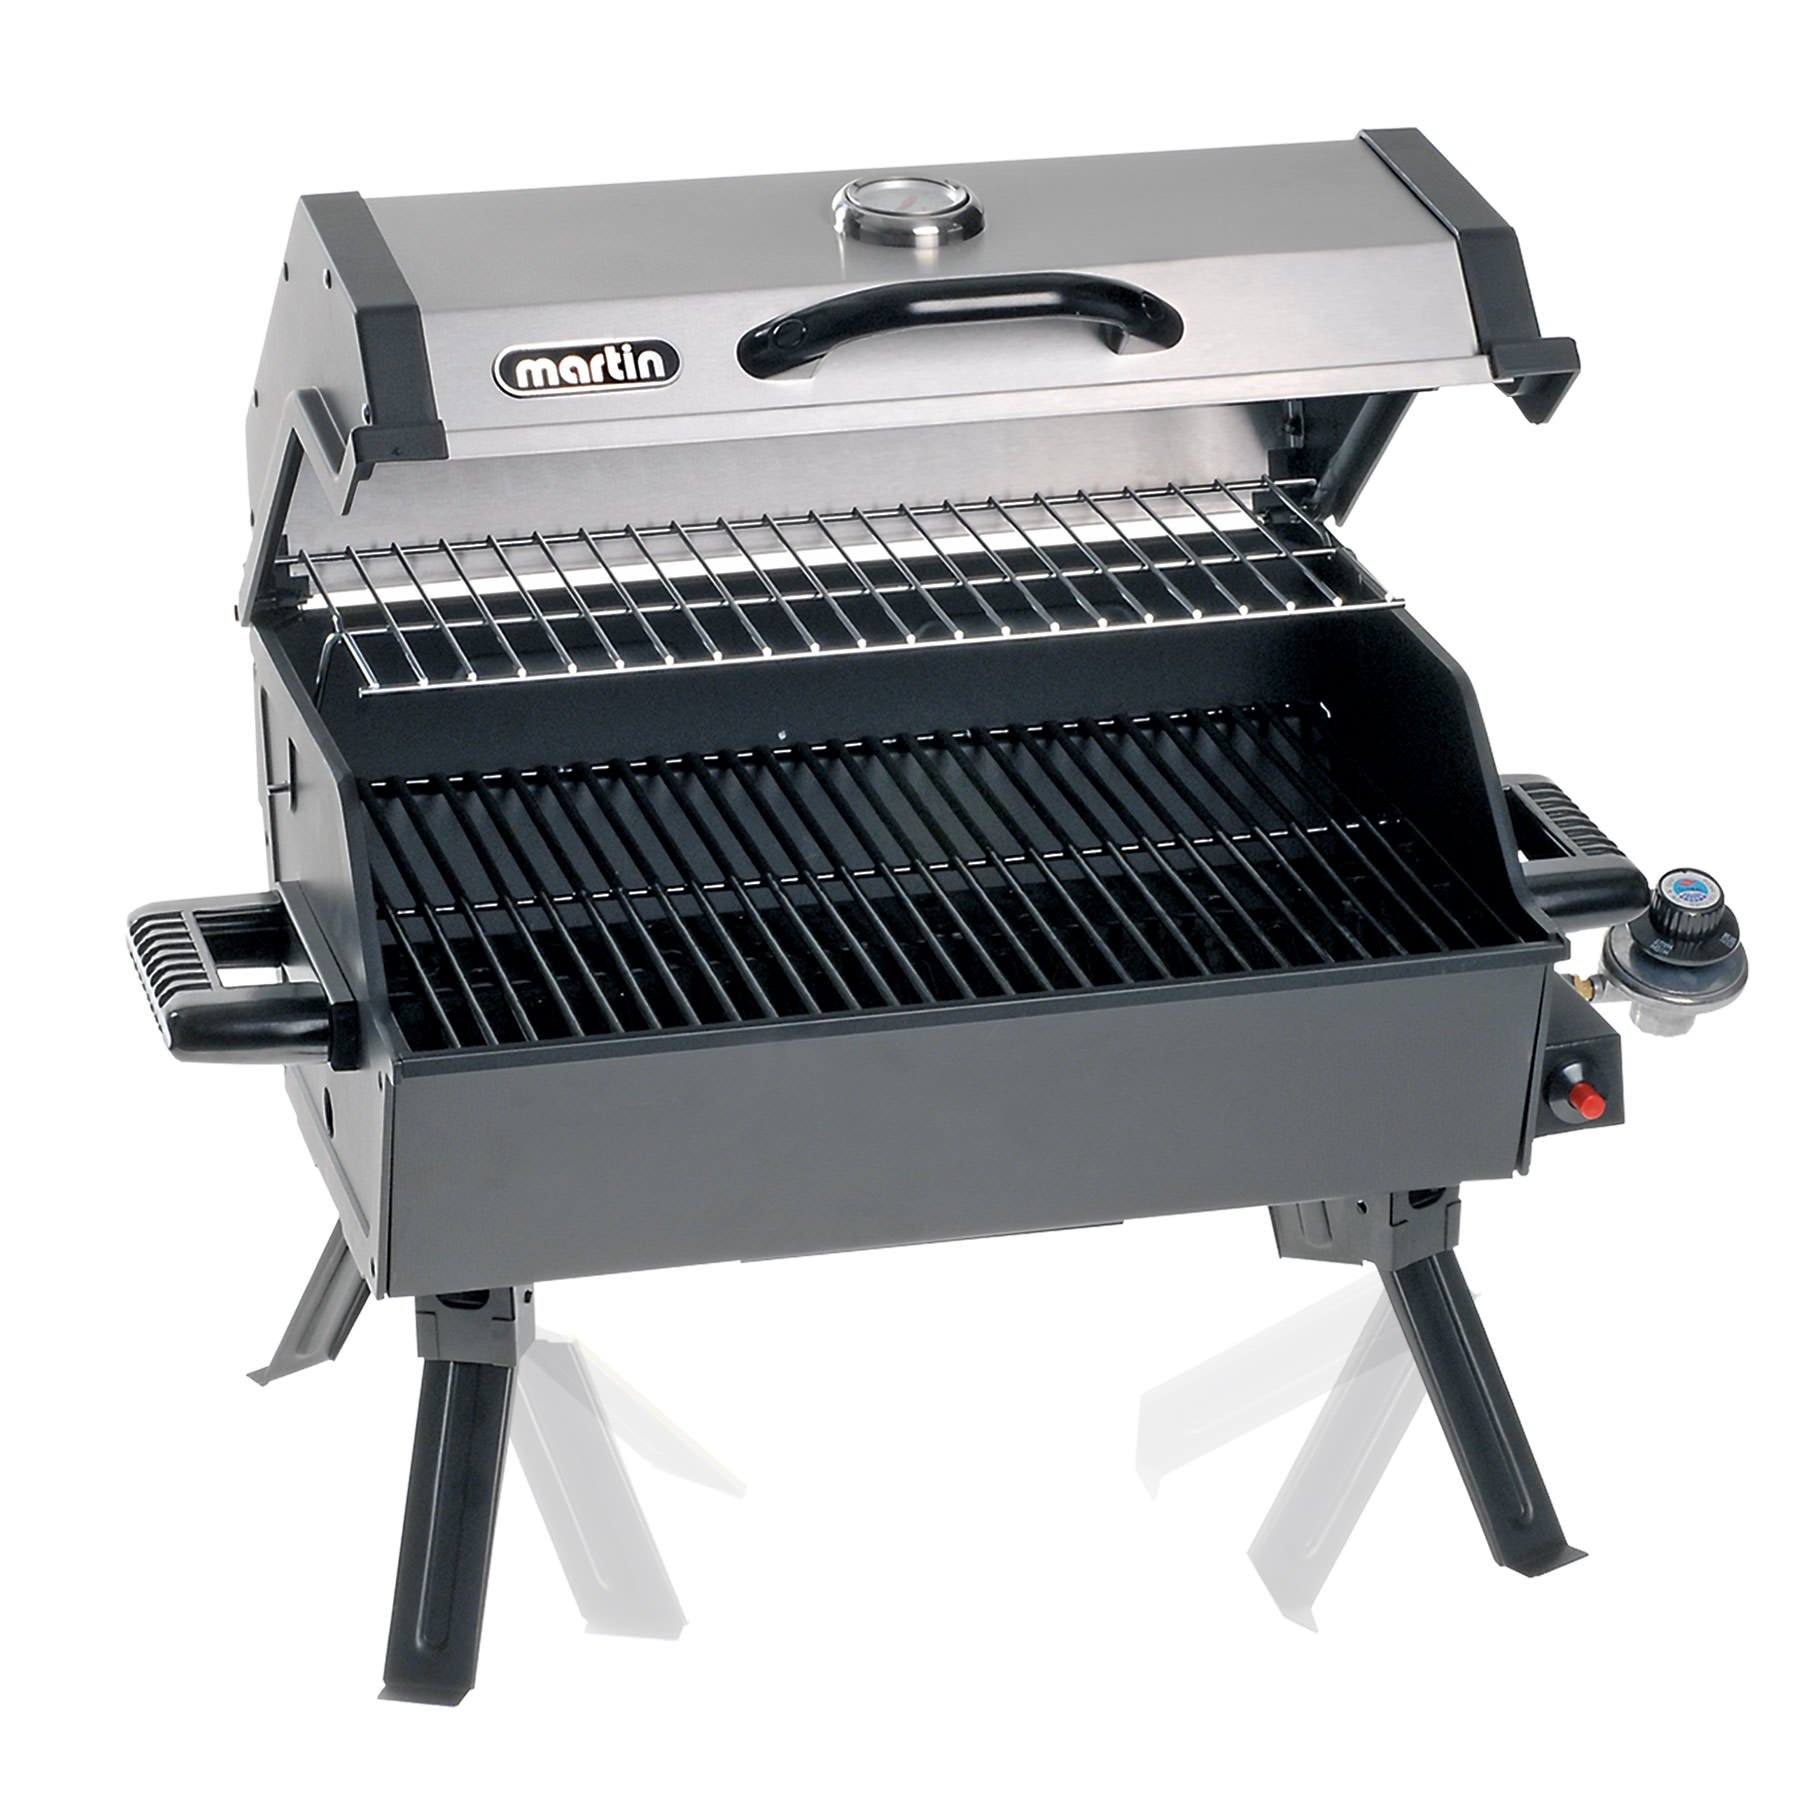 Martin Portable Propane BBQ Gas Grill 14,000 Btu Porcelain Grid with Support Legs and Grease Pan by Martin